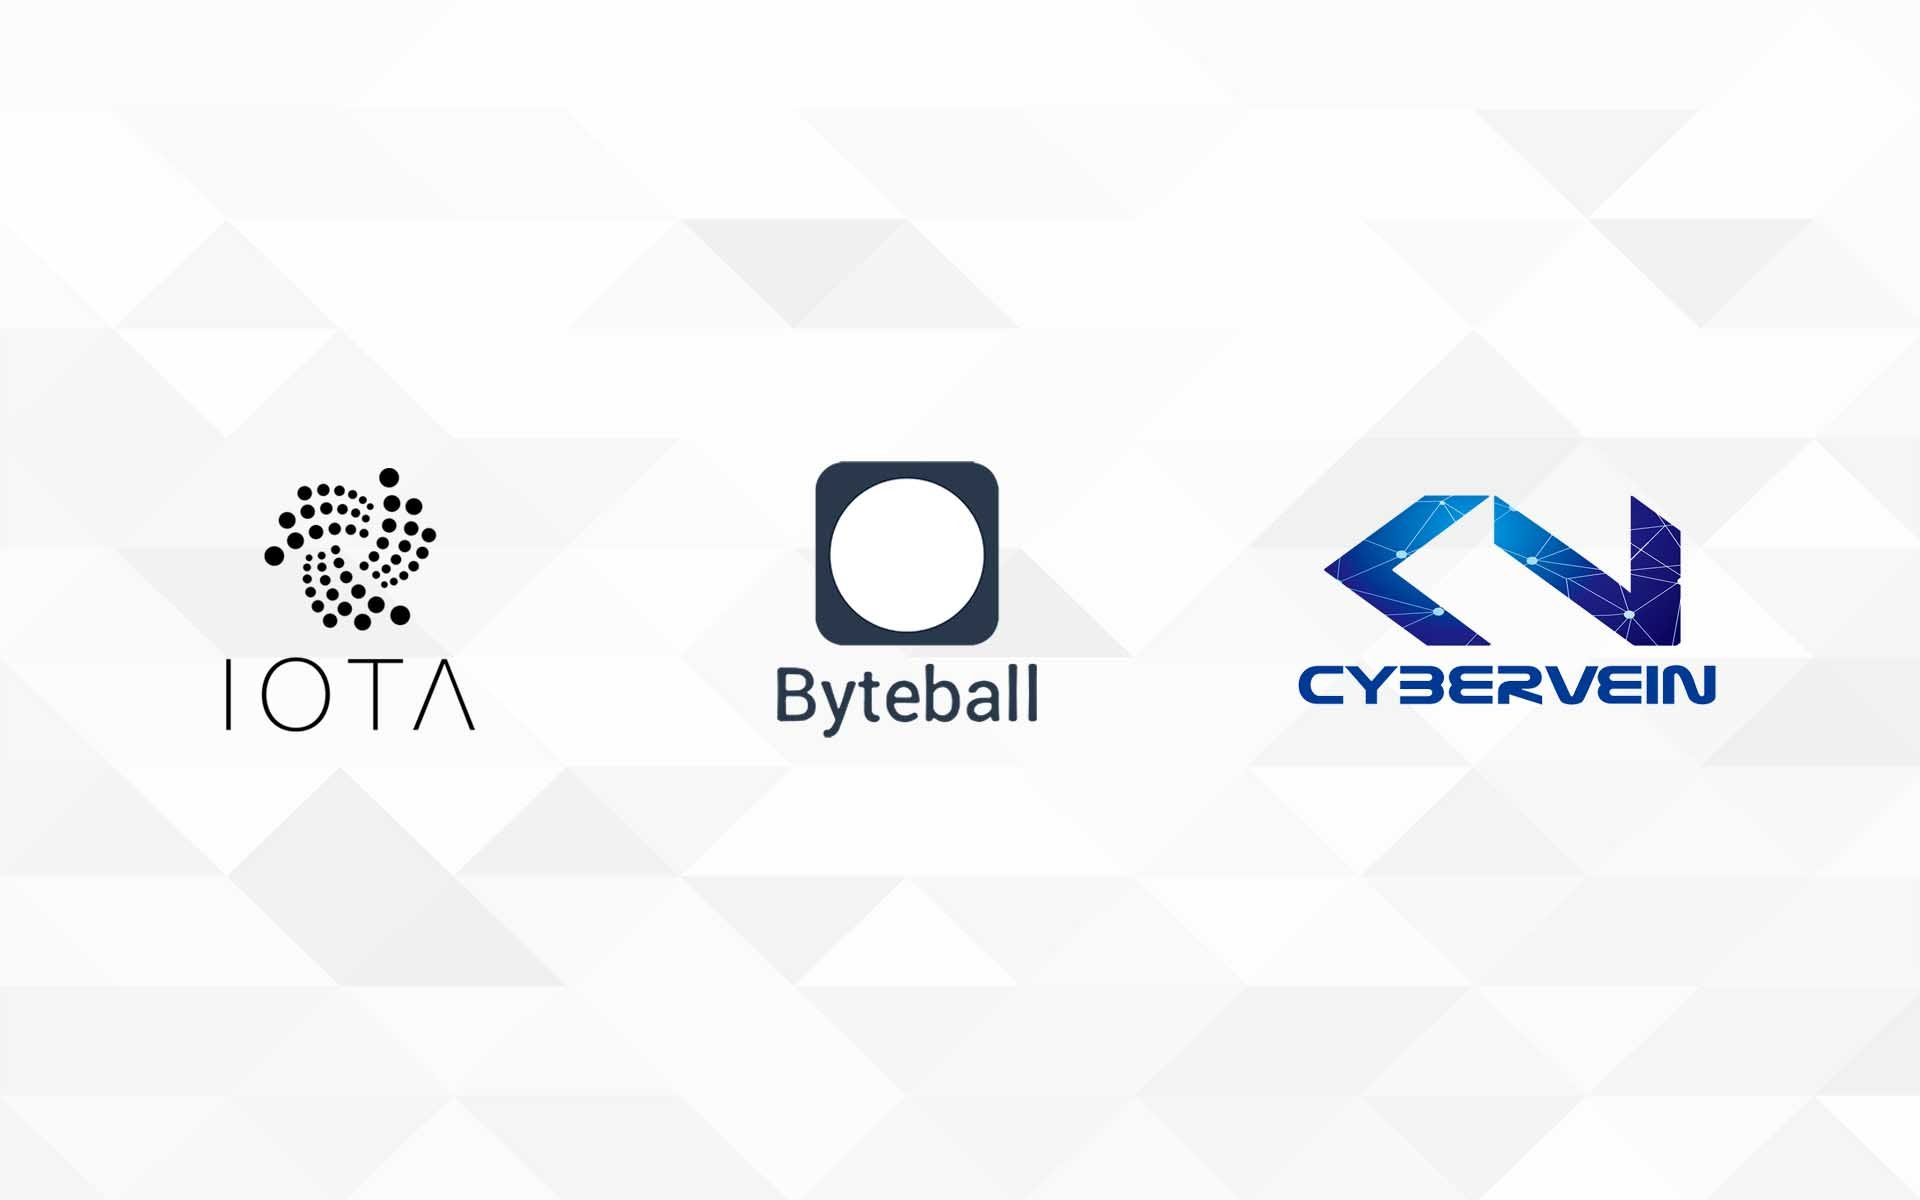 CyberVein Competing Against IOTA and Byteball? It's Not Just That